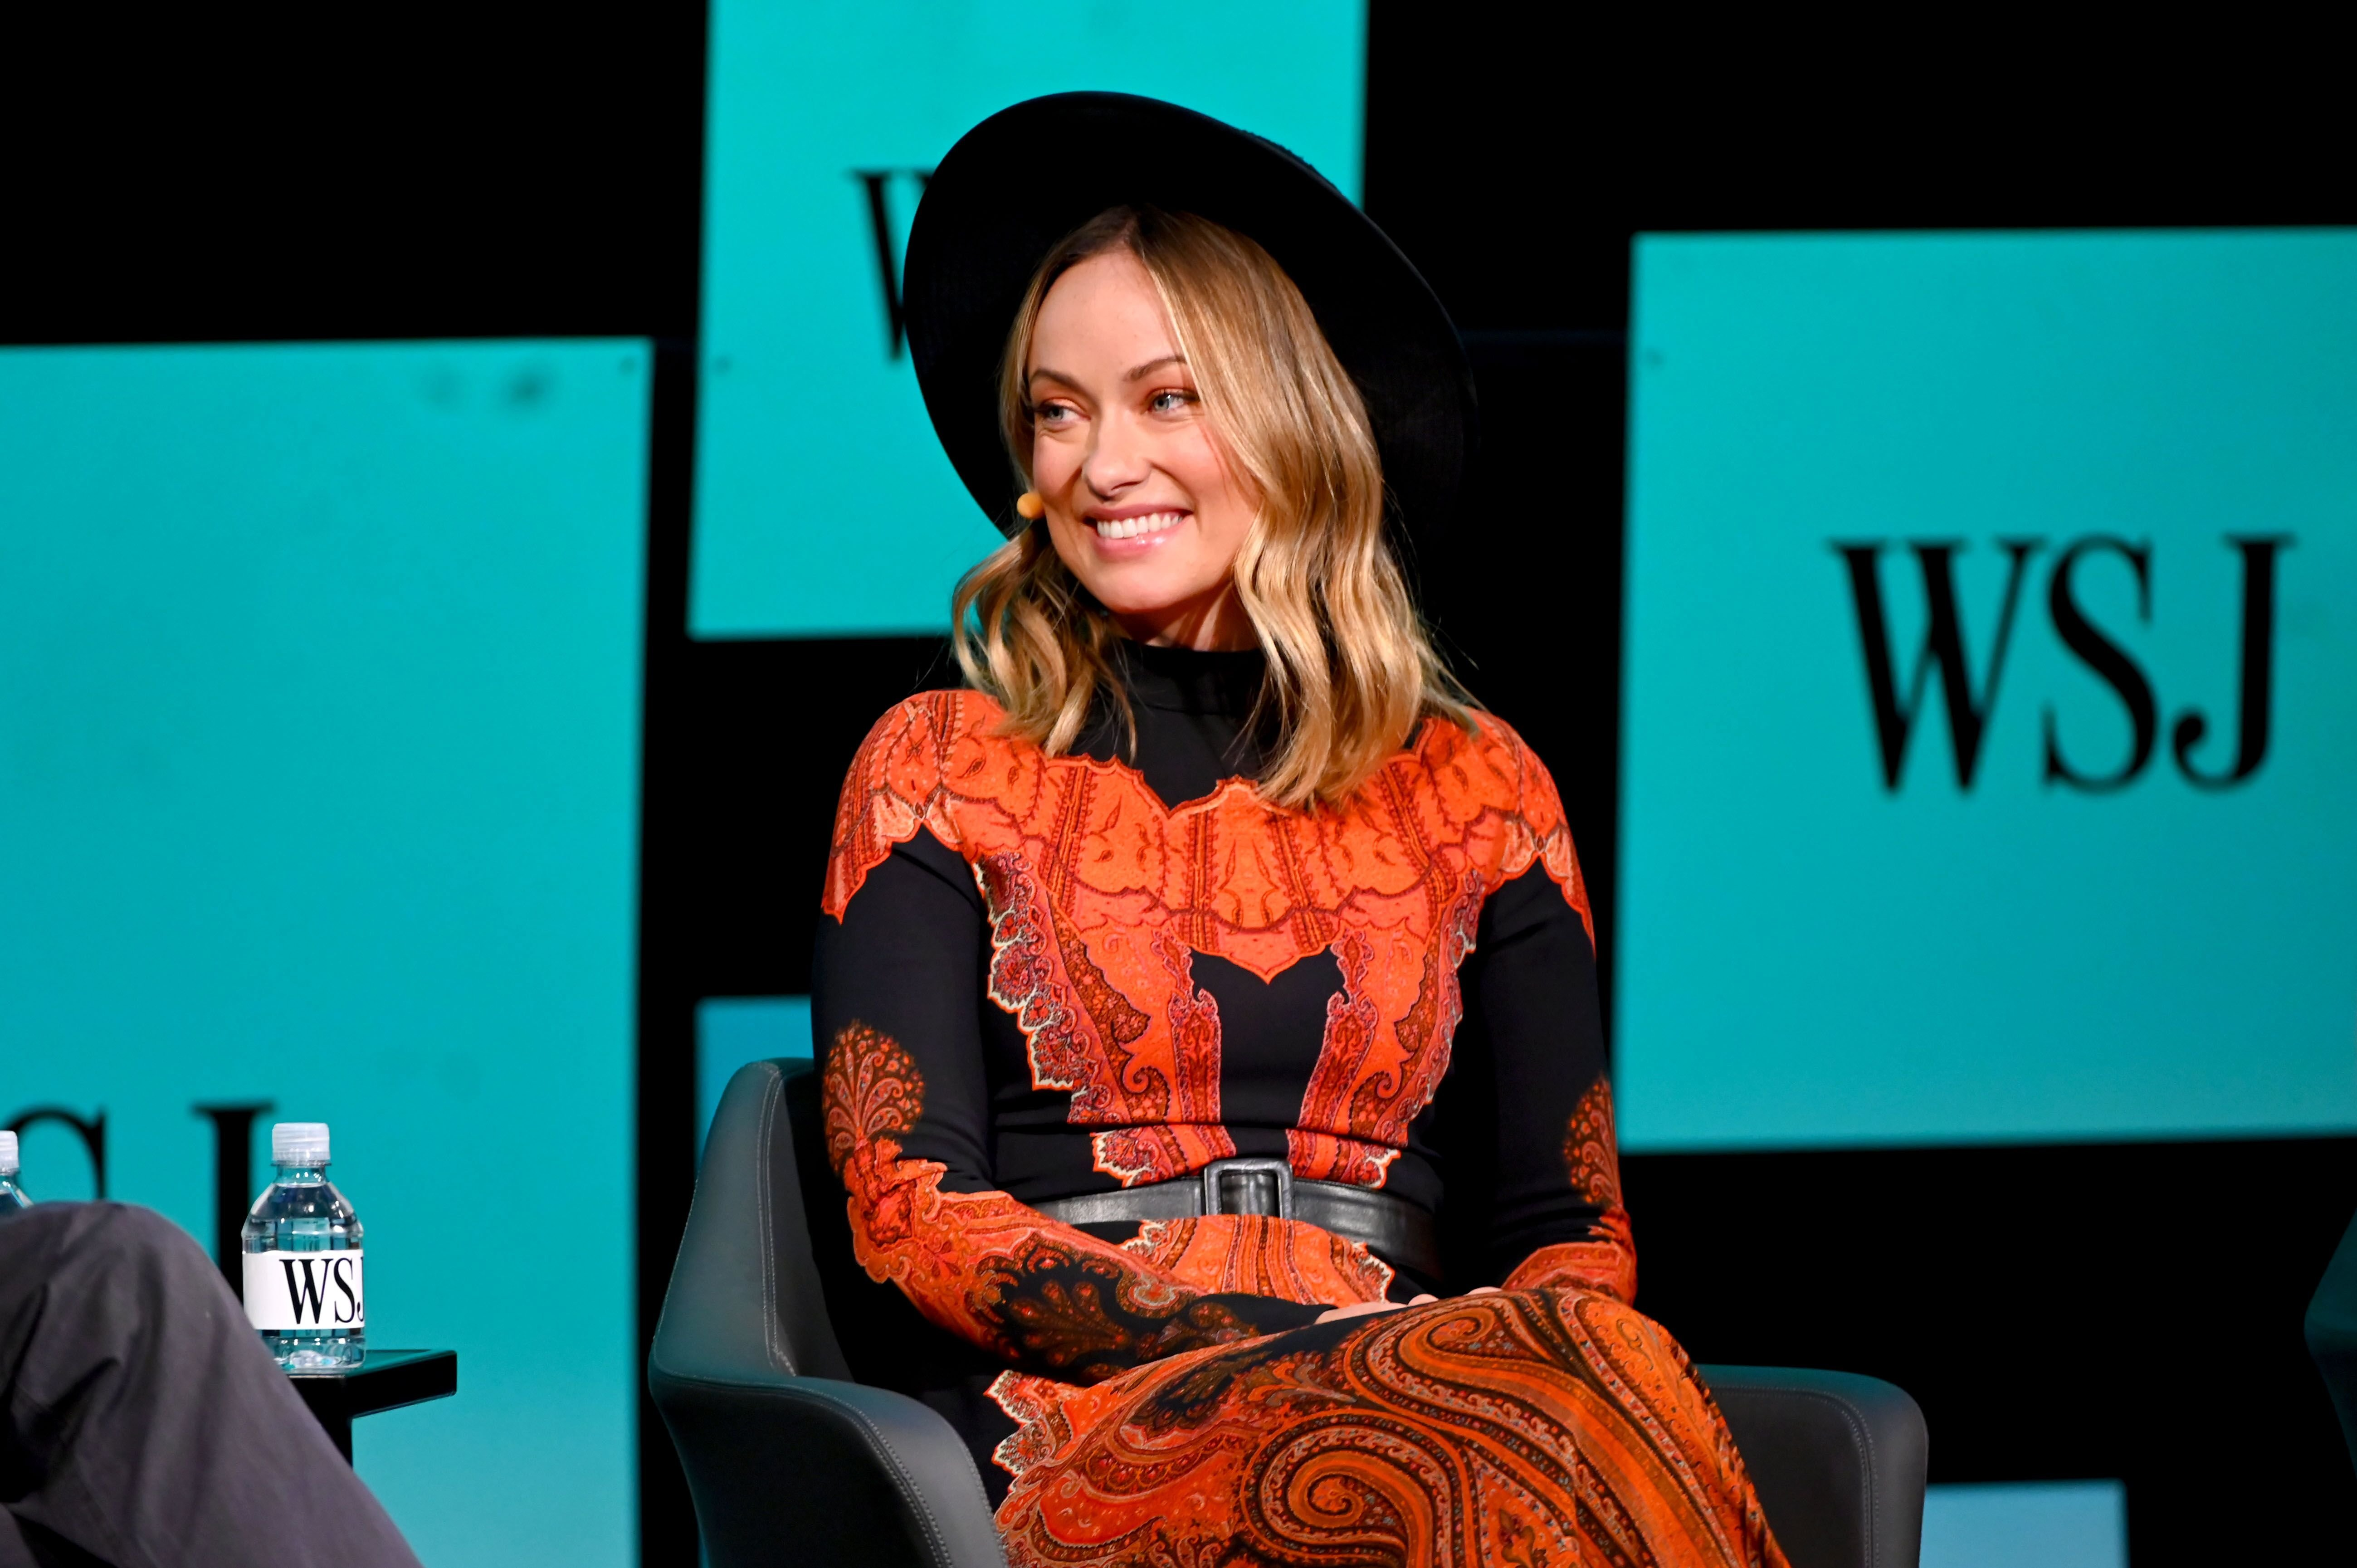 """Olivia Wilde at The Wall Street Journal's """"The Future of Everything Festival"""" held at Spring Studios on May 22, 2019, in New York City 